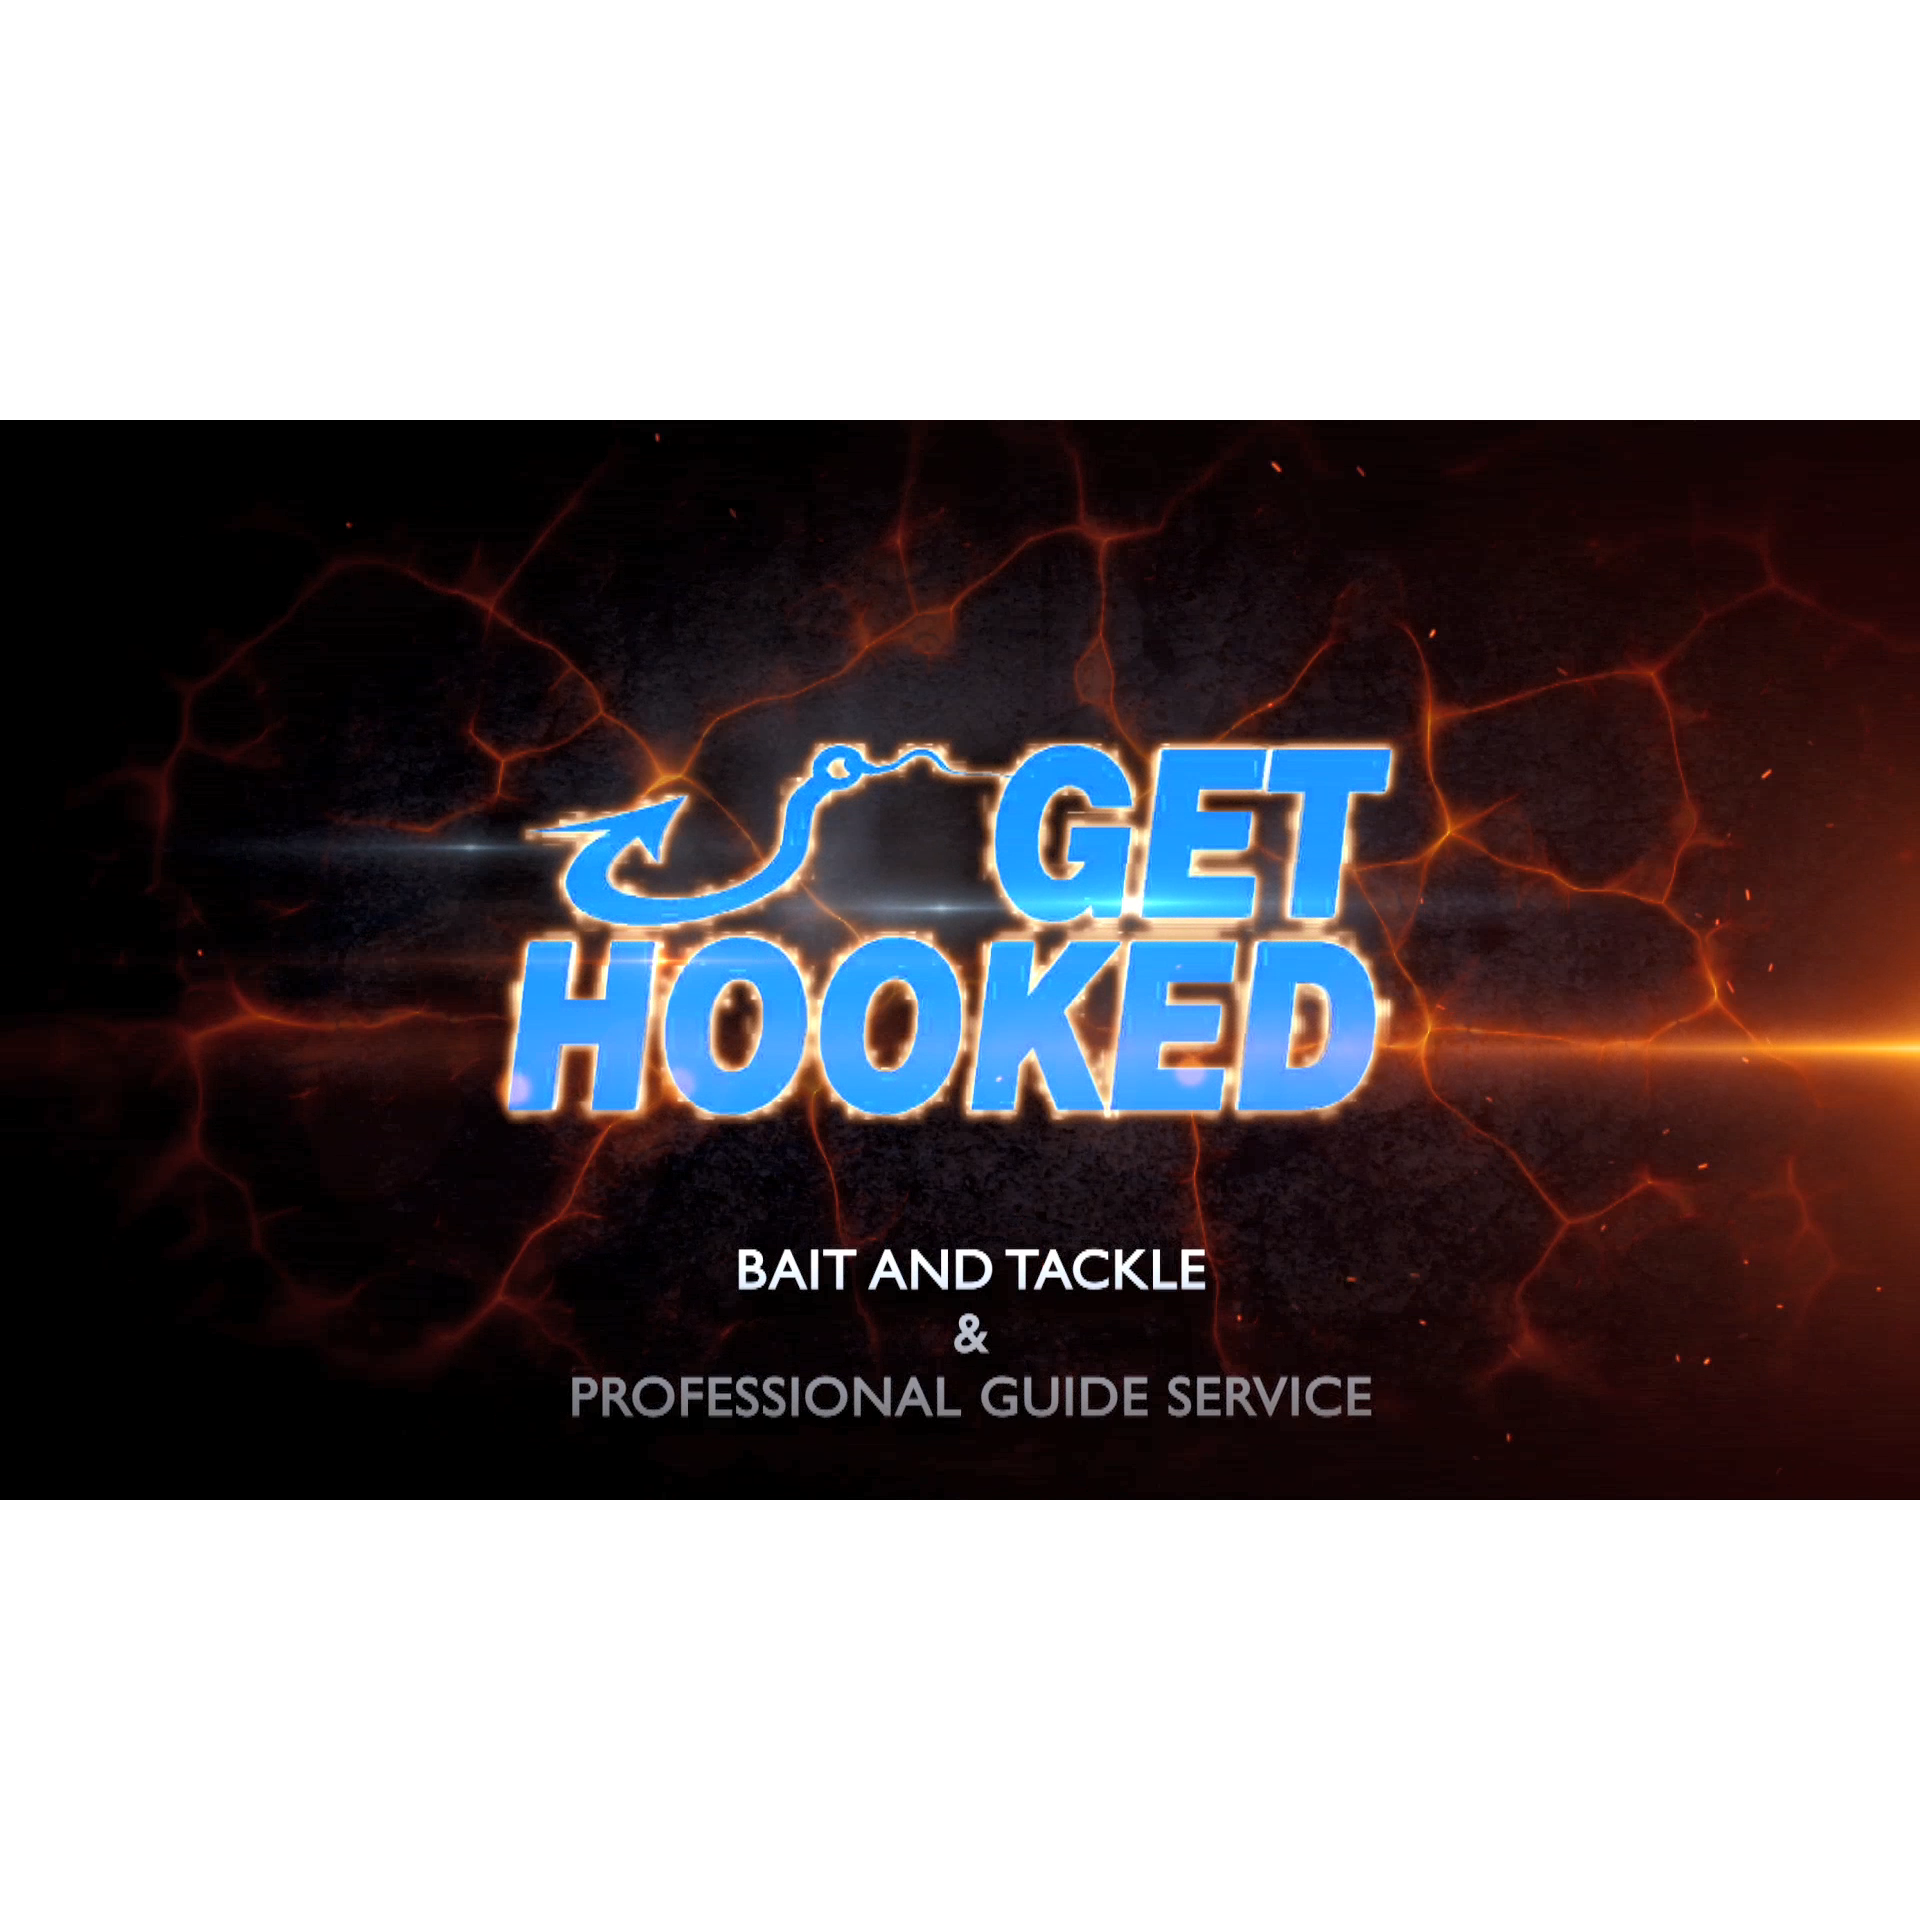 Get Hooked Bait and Tackle image 5